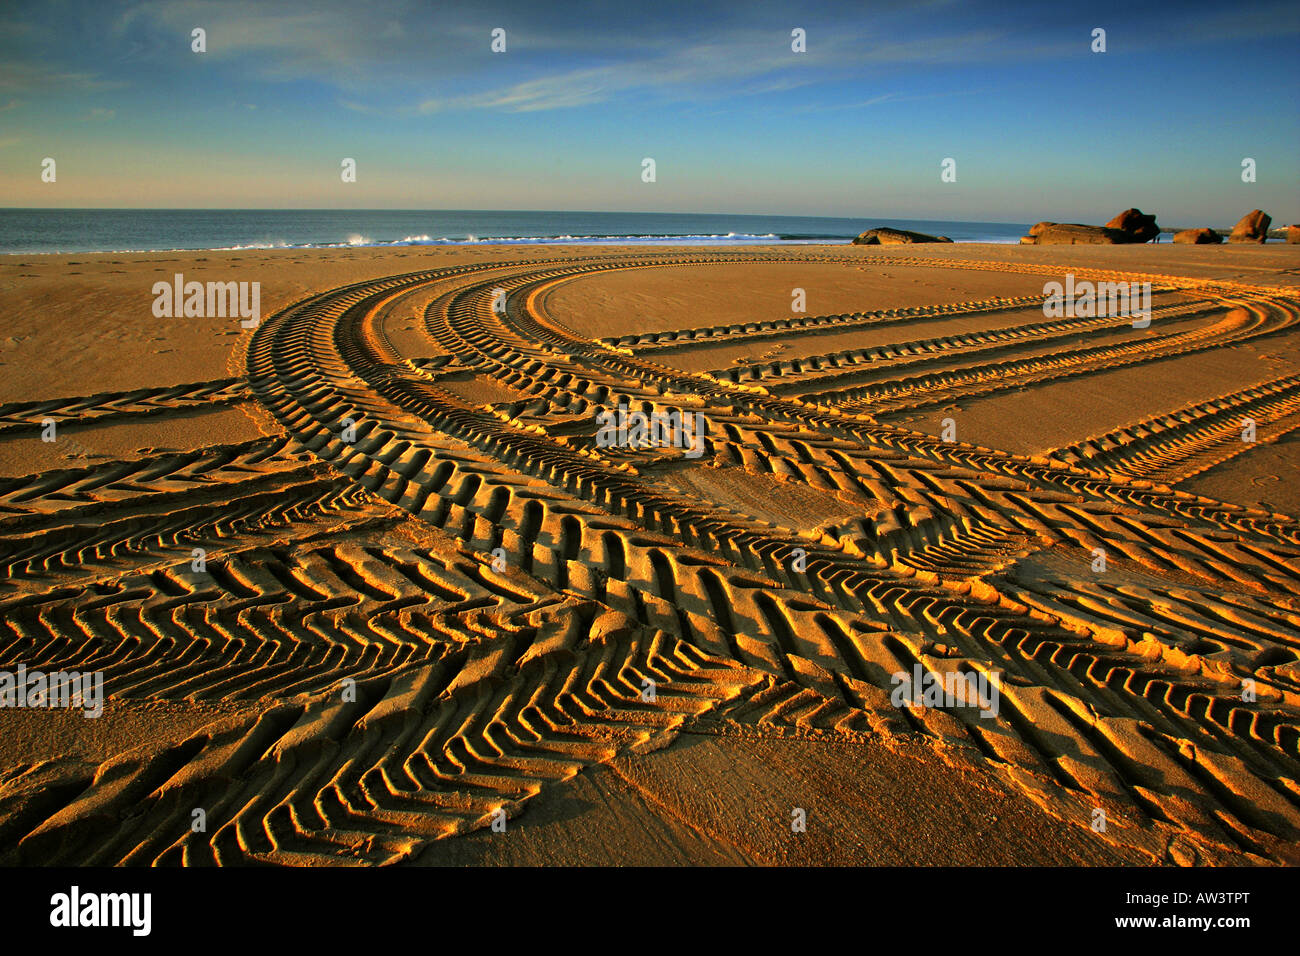 Tyre tracks in the sand at Capbreton in France. - Stock Image